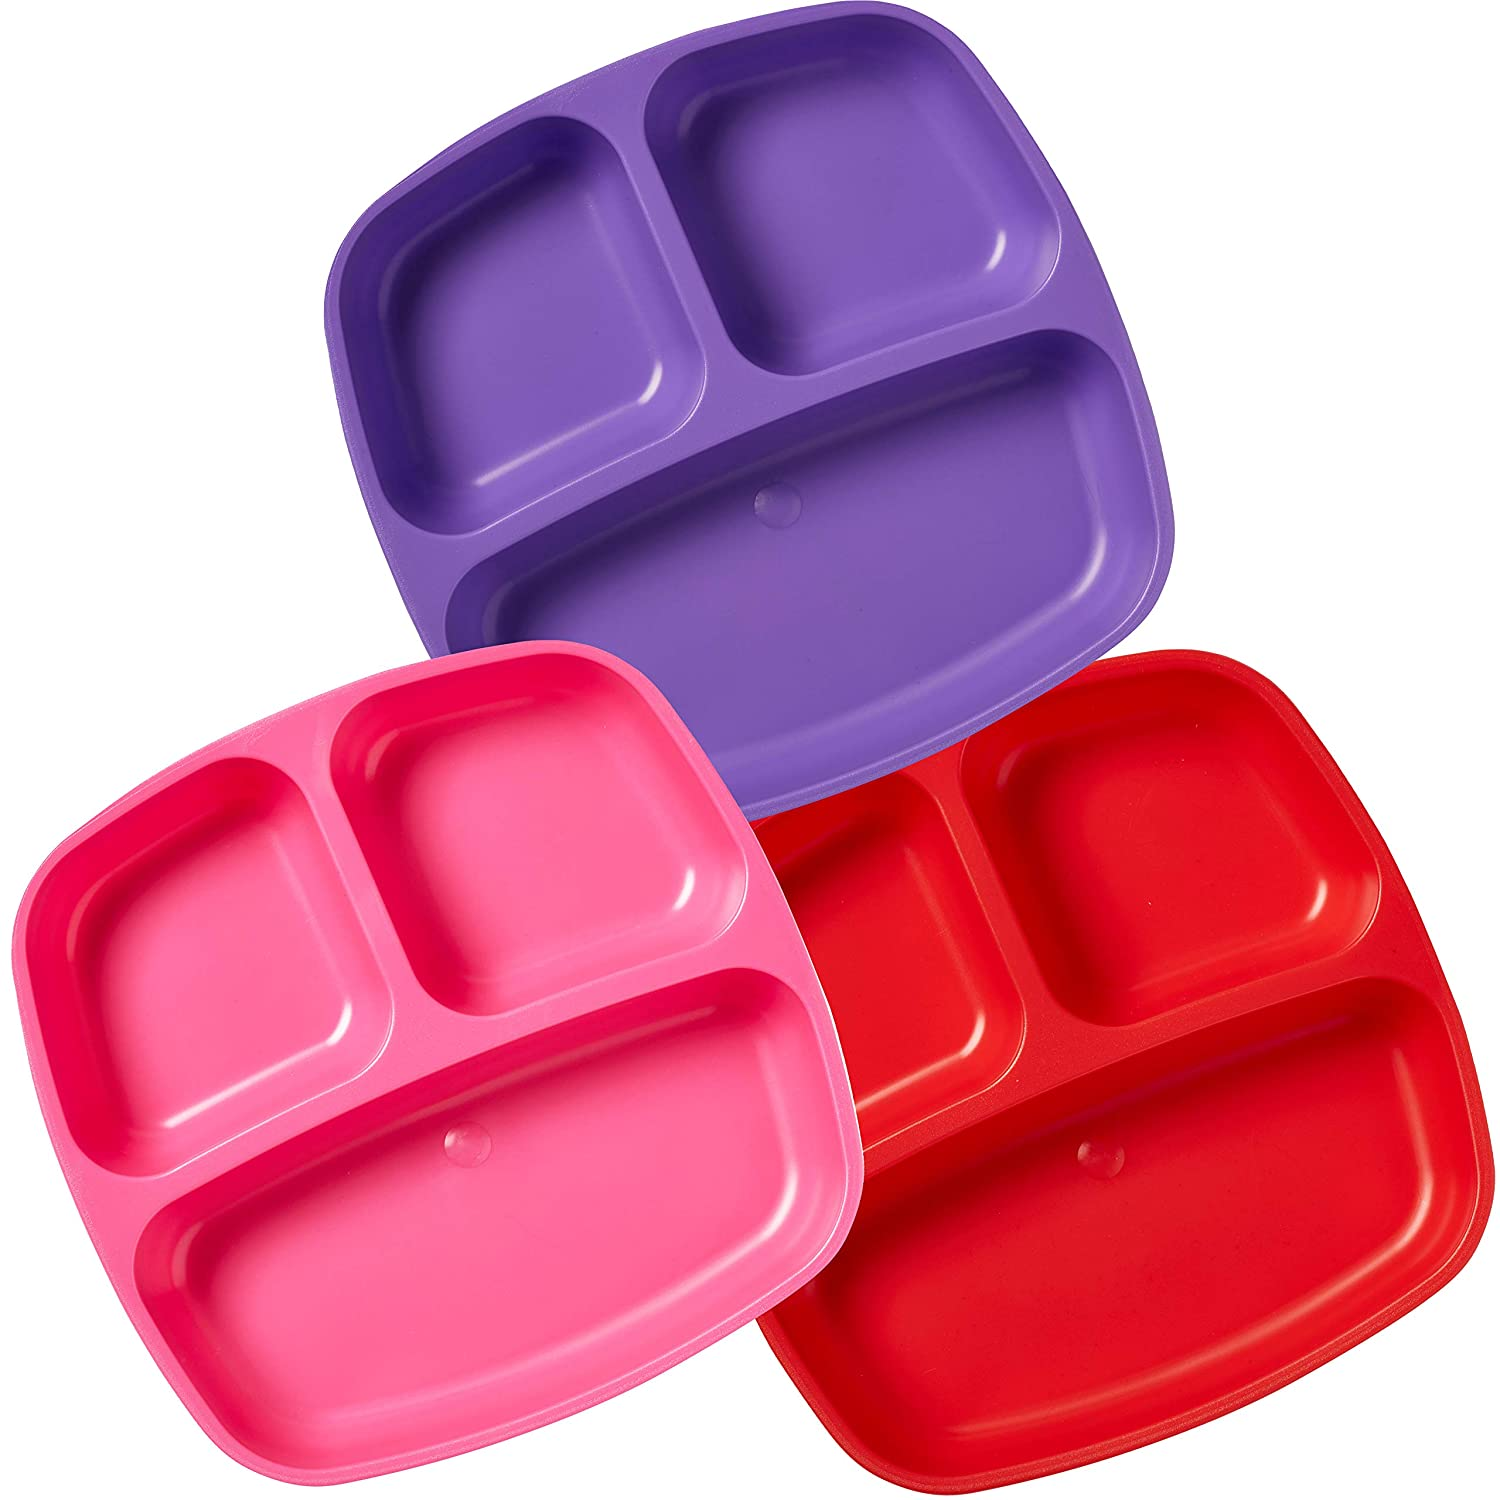 ECR4Kids My First Meal Pal Divided Toddler Plates – Stackable, BPA-Free Plastic Dishes, Dishwasher Safe, Portion Plate Set for Baby, Toddler and Child Feeding - 3-Pack, Berry